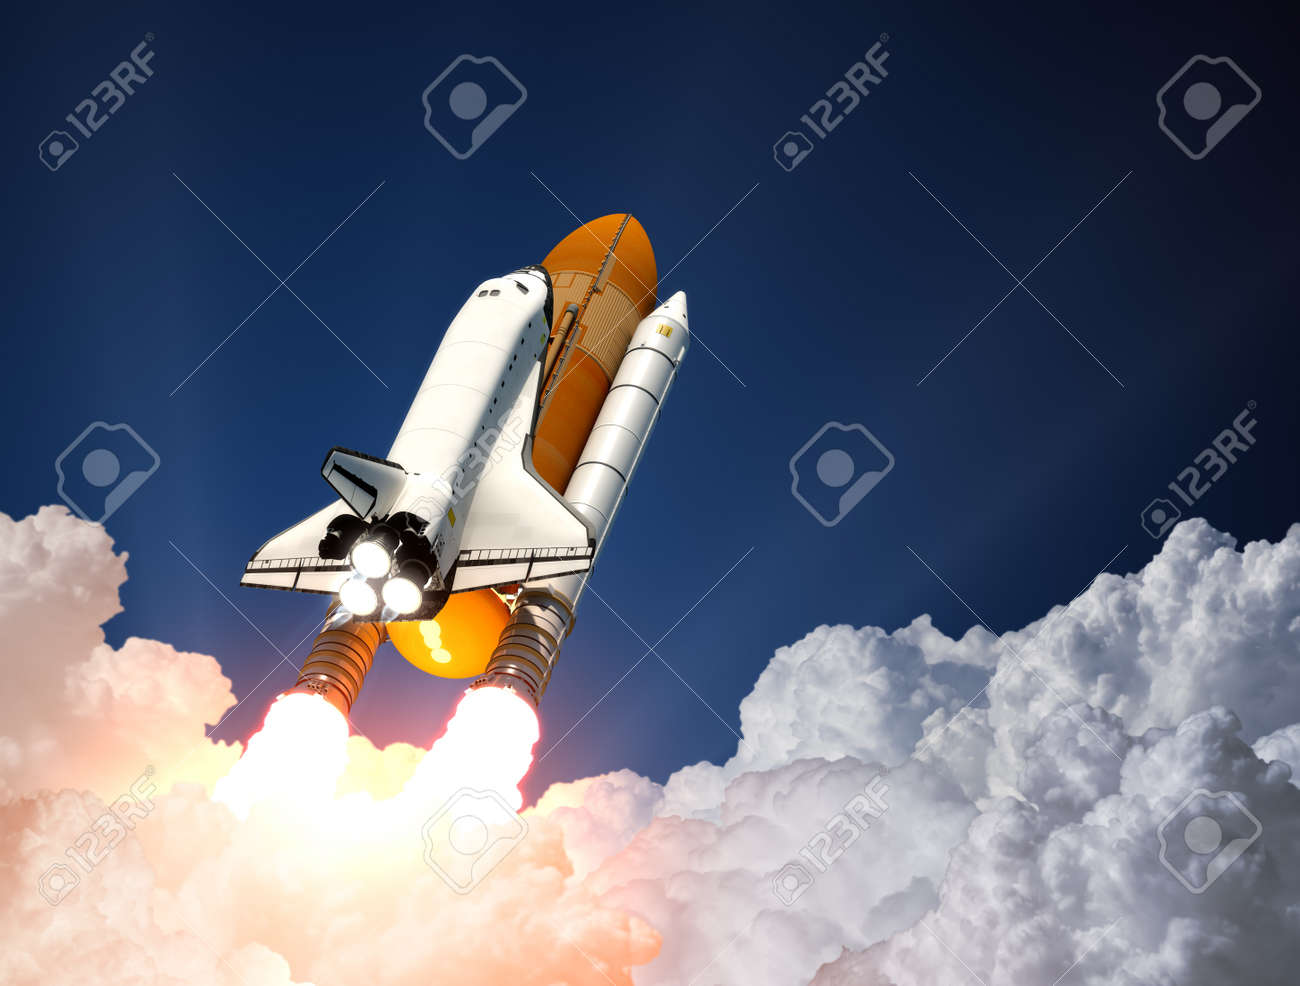 Space Shuttle Over The Clouds. 3D Scene. - 42271968